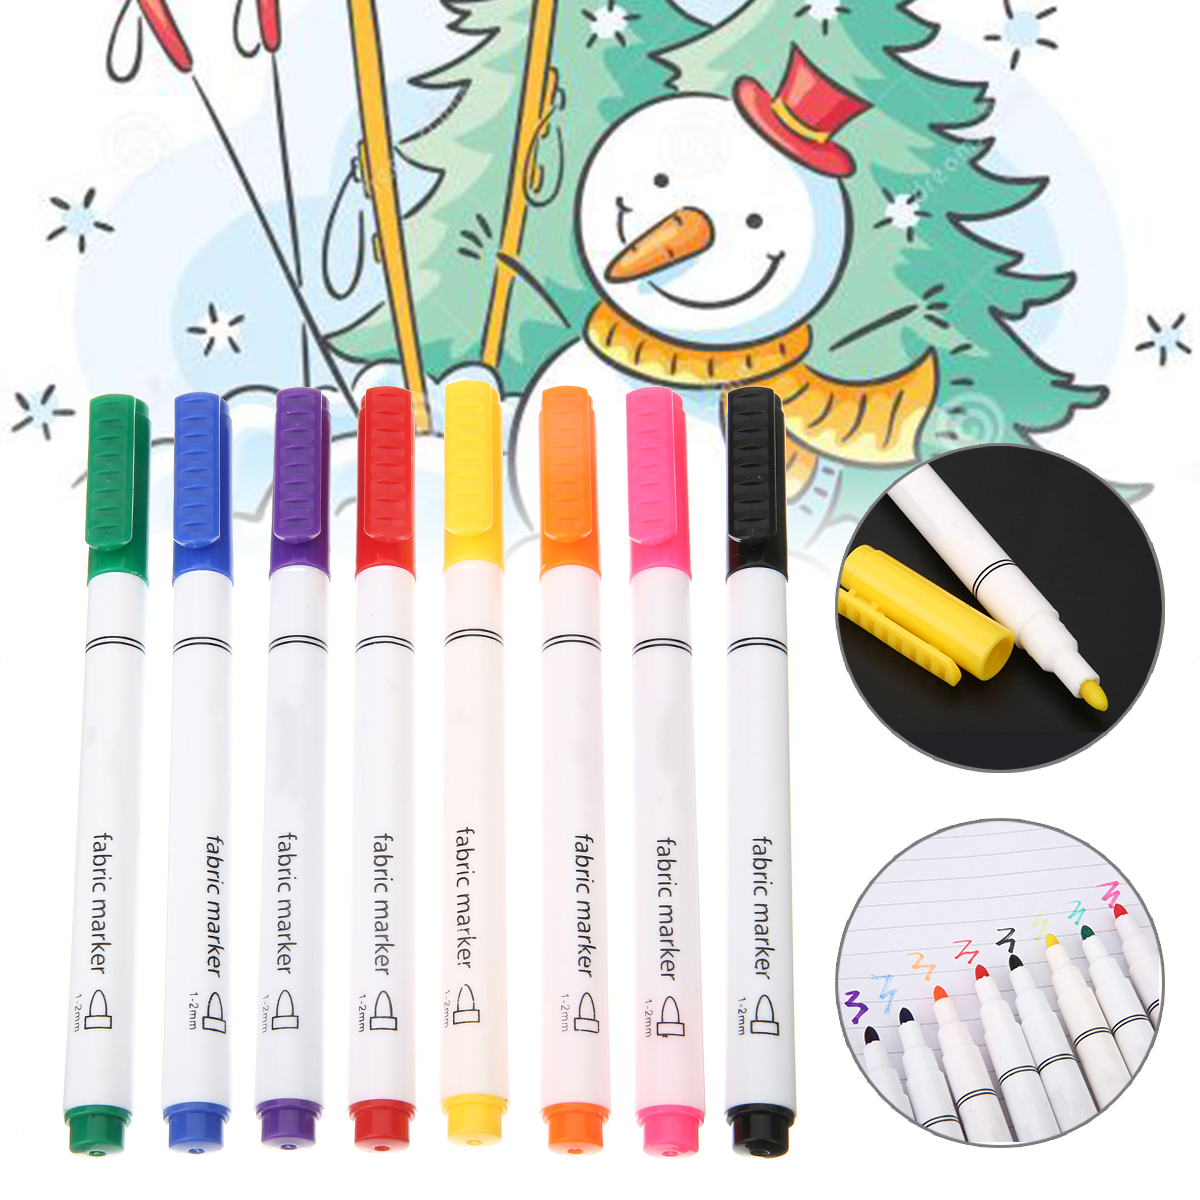 8 Colors DIY Fabric And T-Shirt Liner Marker Pens Textile Paint Cloth Pigment Writing Painting Supplies Colorful Fabric Pen